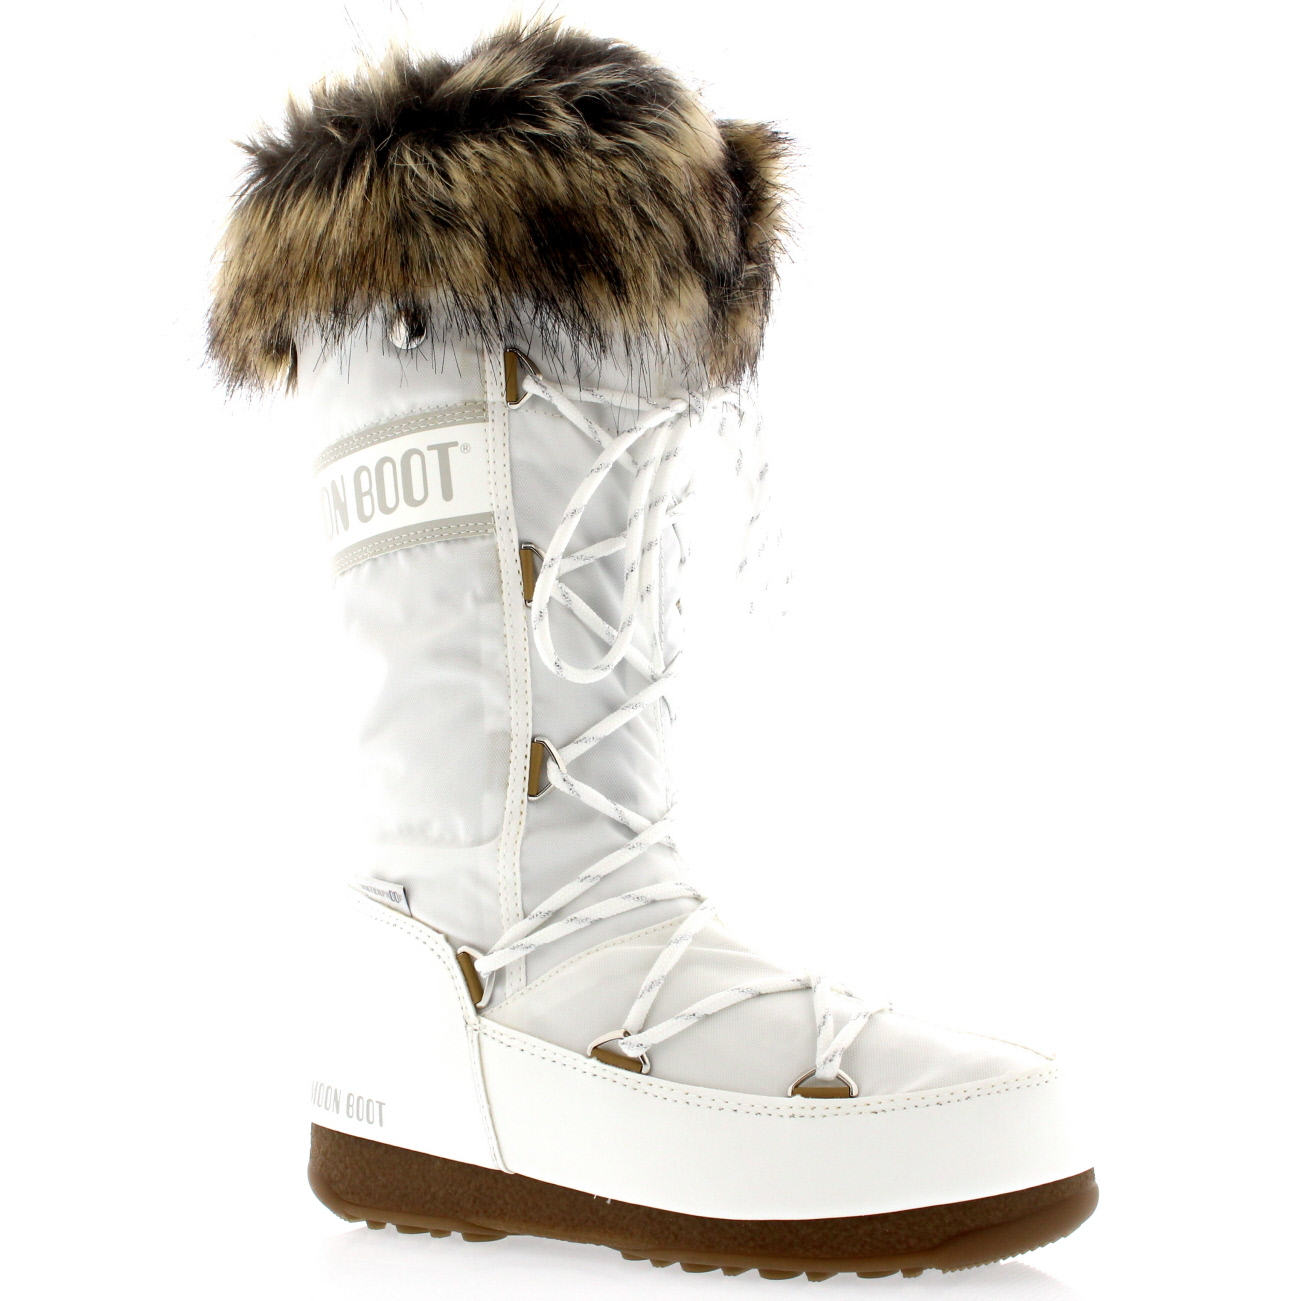 The Original Moon Boot Monaco